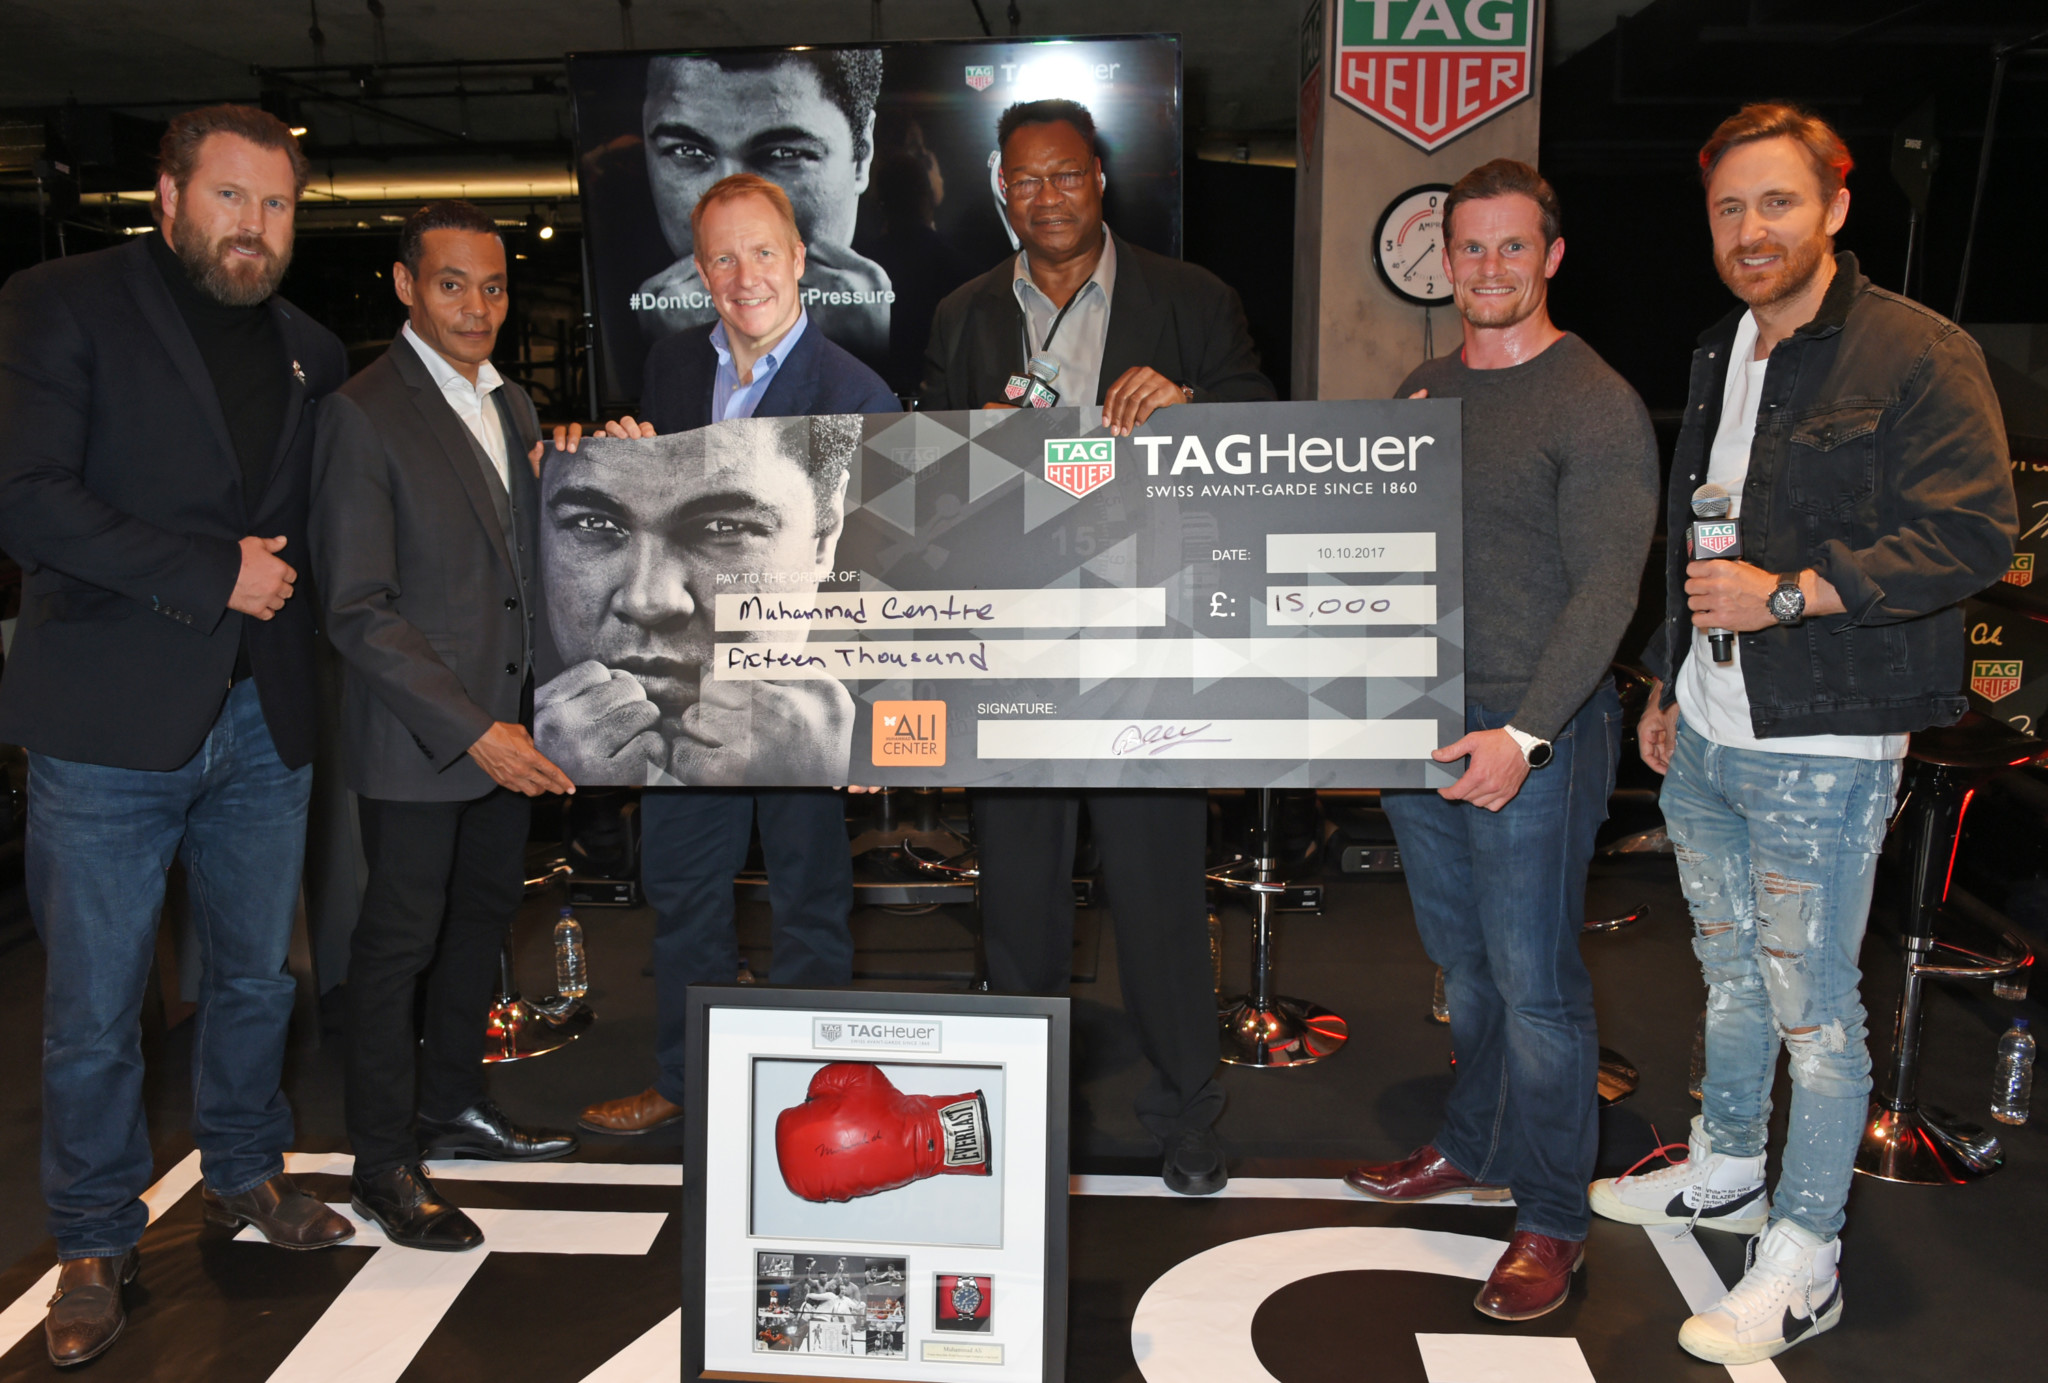 (L to R) Scott Welch, Chairman of the World Boxing Council, Donald E. Lassere, CEO of the Muhammad Ali Center, Larry Holmes, guest and David Guetta attend the launch of the TAG Heuer Muhammad Ali Limited Edition Timepieces.